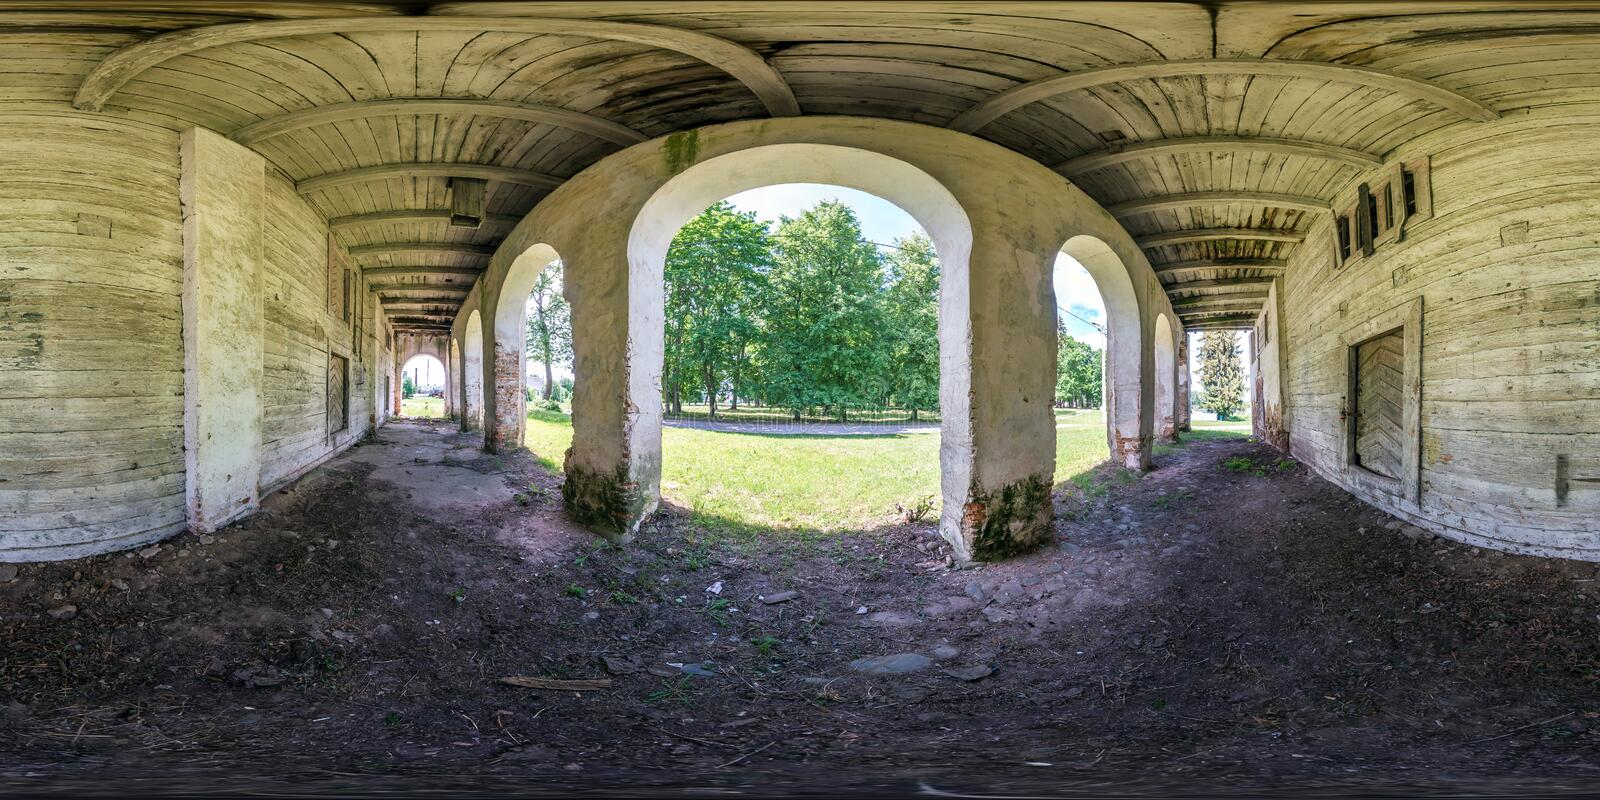 Full seamless spherical hdri panorama 360 degrees angle view near wooden abandoned ruined farm barn building with columns in stock photos